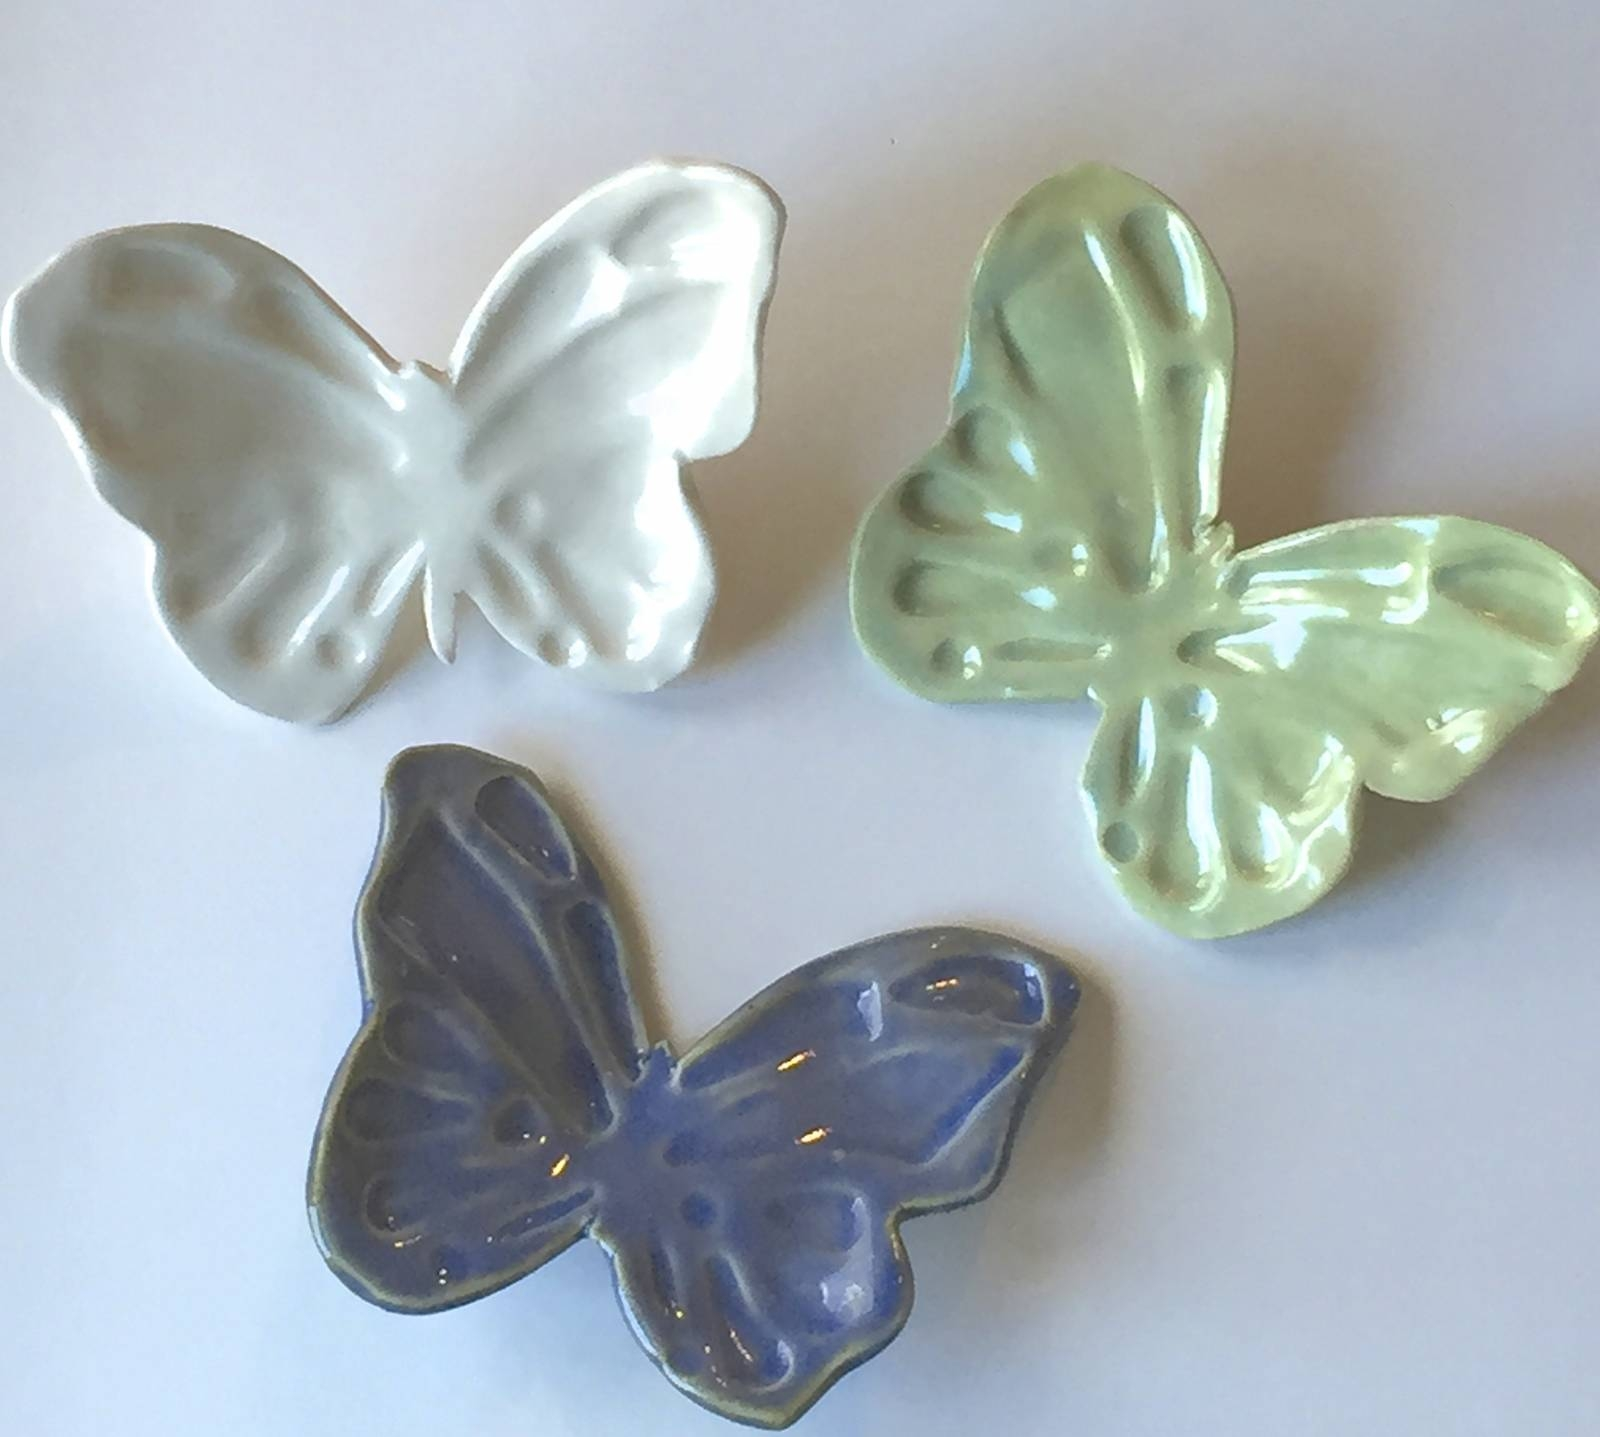 Yard And Garden Pieces | Karen O'lone Hahn Inside Latest Ceramic Butterfly Wall Art (View 21 of 30)